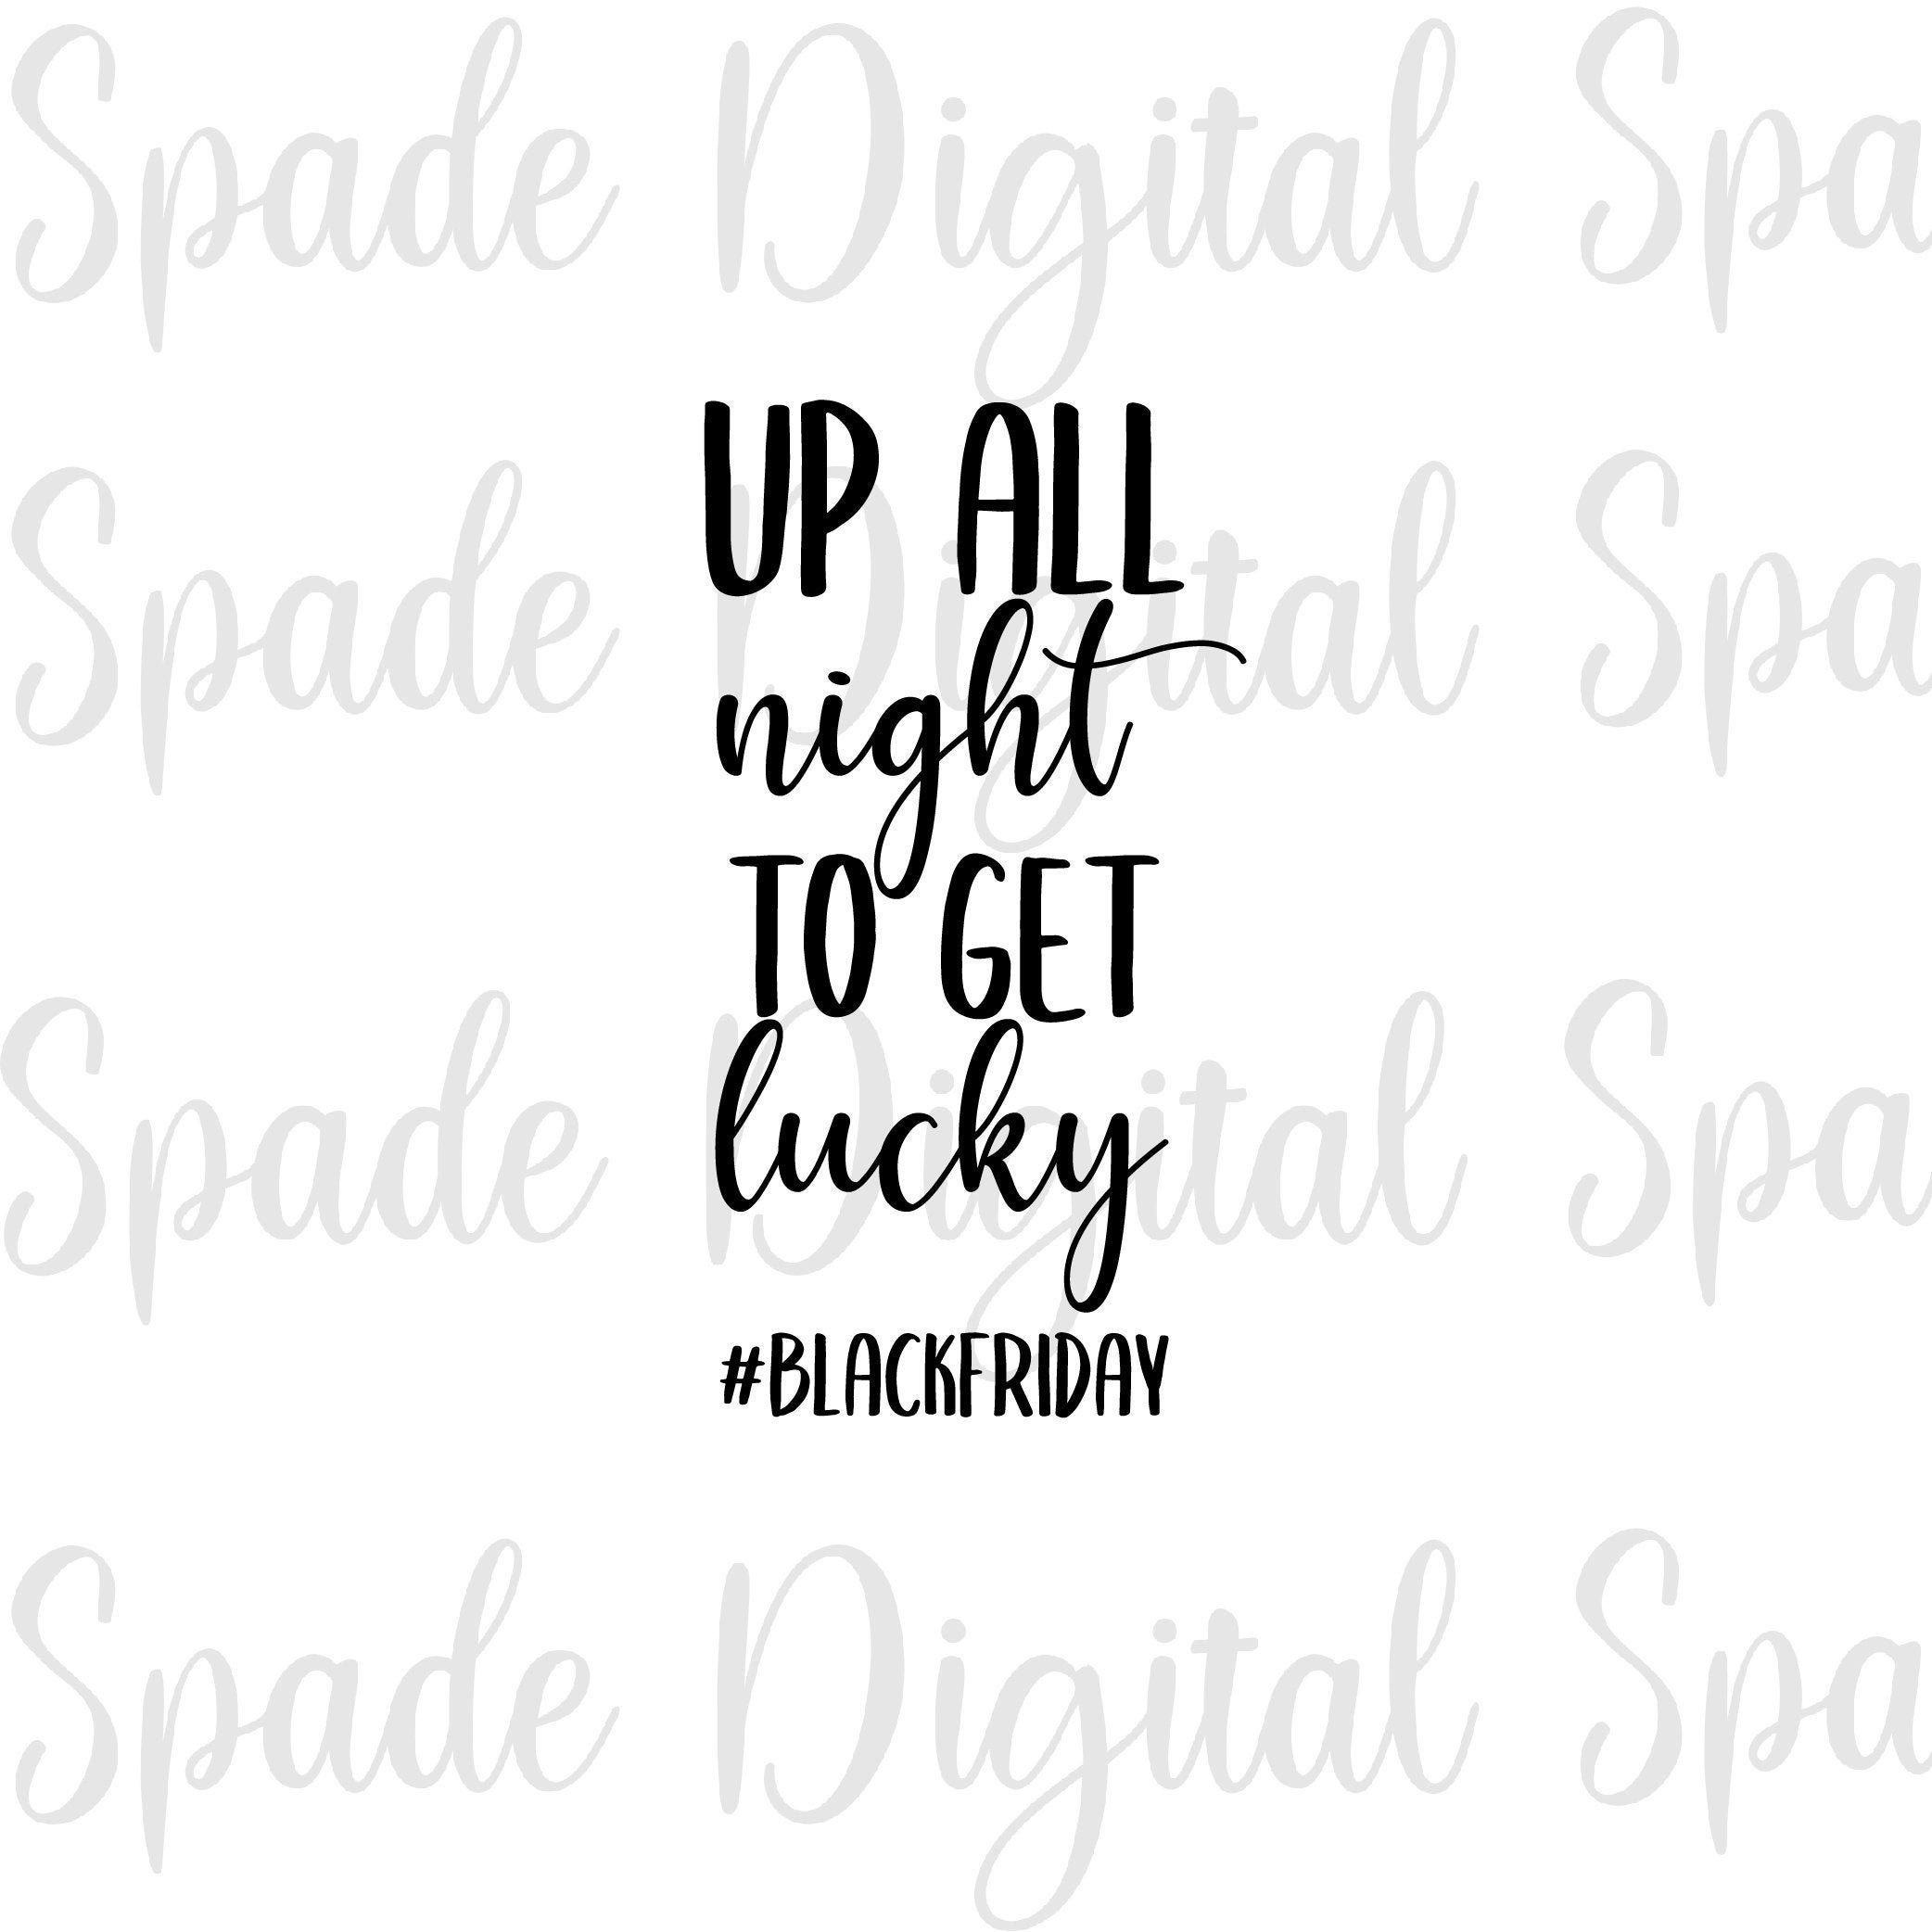 Up All Night To Get Lucky SVG, Black Friday SVG, Black Friday Png, Thanksgiving SVG, Black Friday, Black Friday Jpg,Black Friday Sublimation